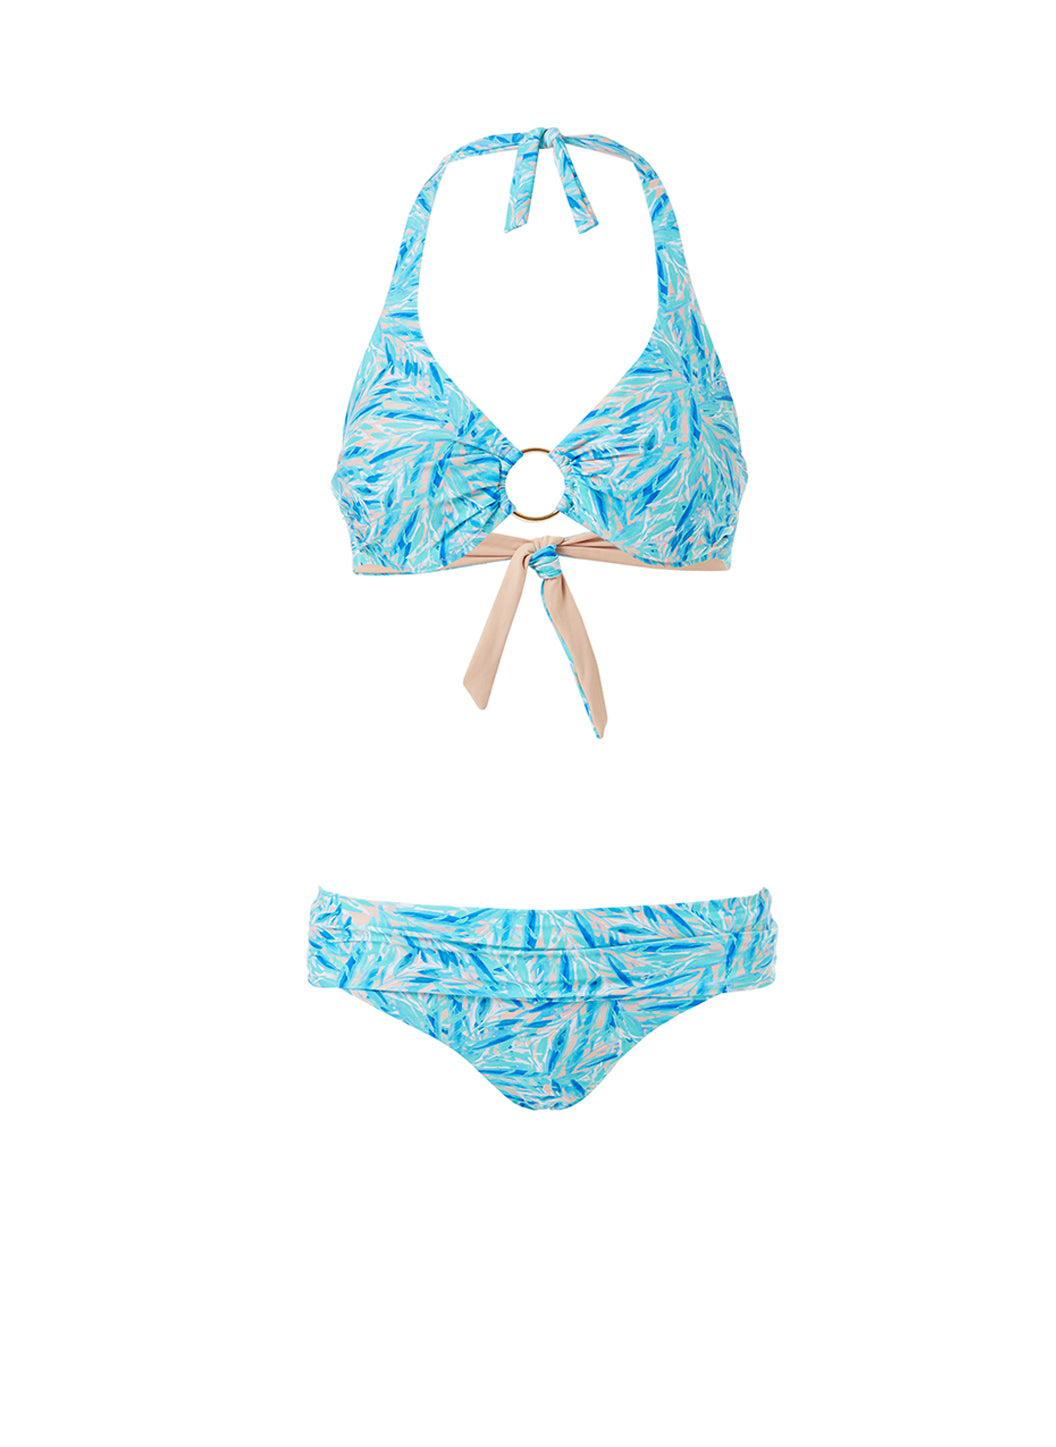 Brussels Blue Leaf Halterneck Ring Supportive Bikini